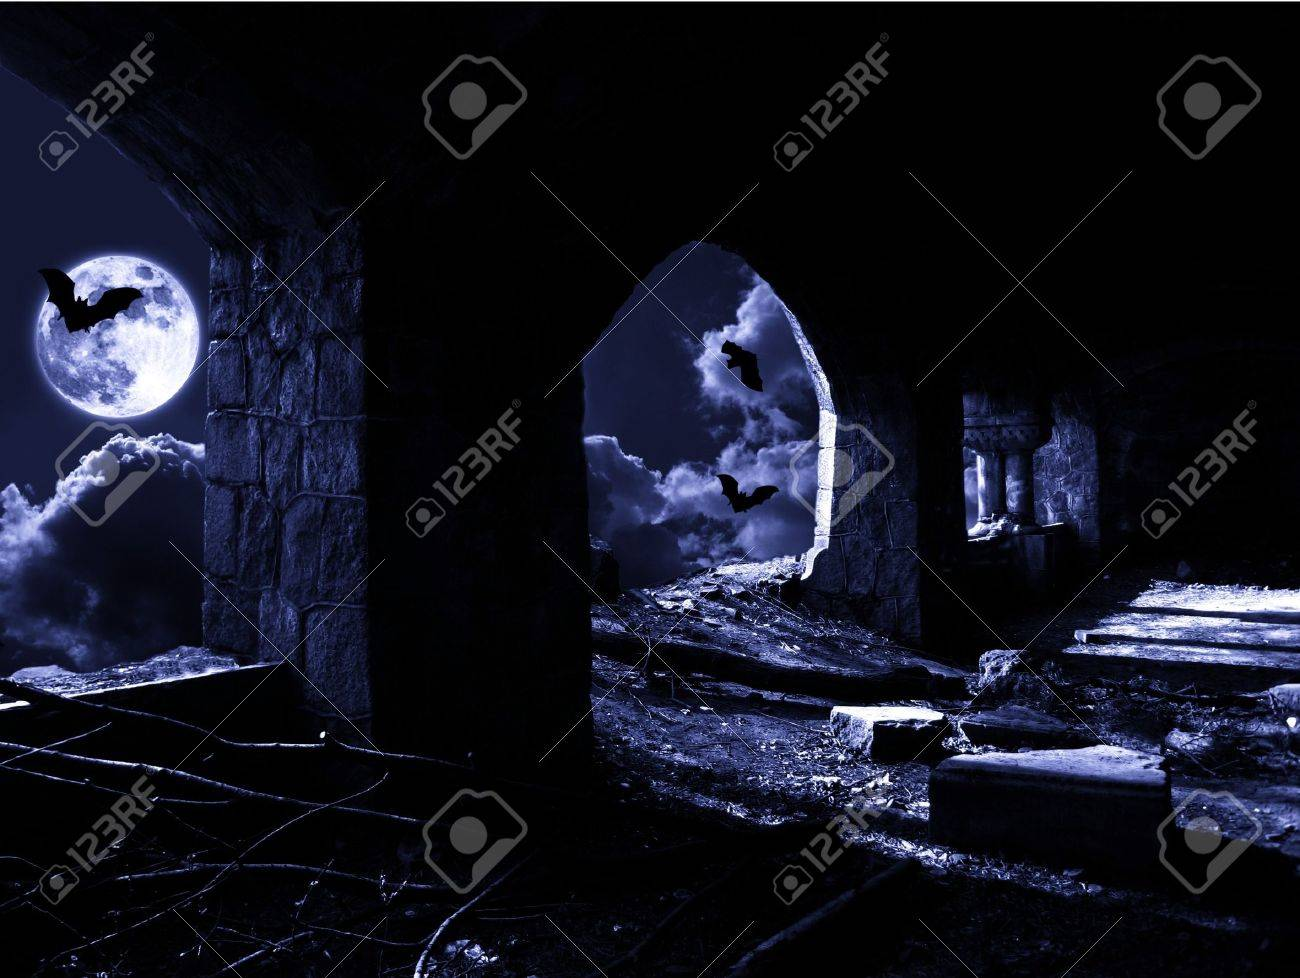 lighted up with light of moon ruins - 8180402